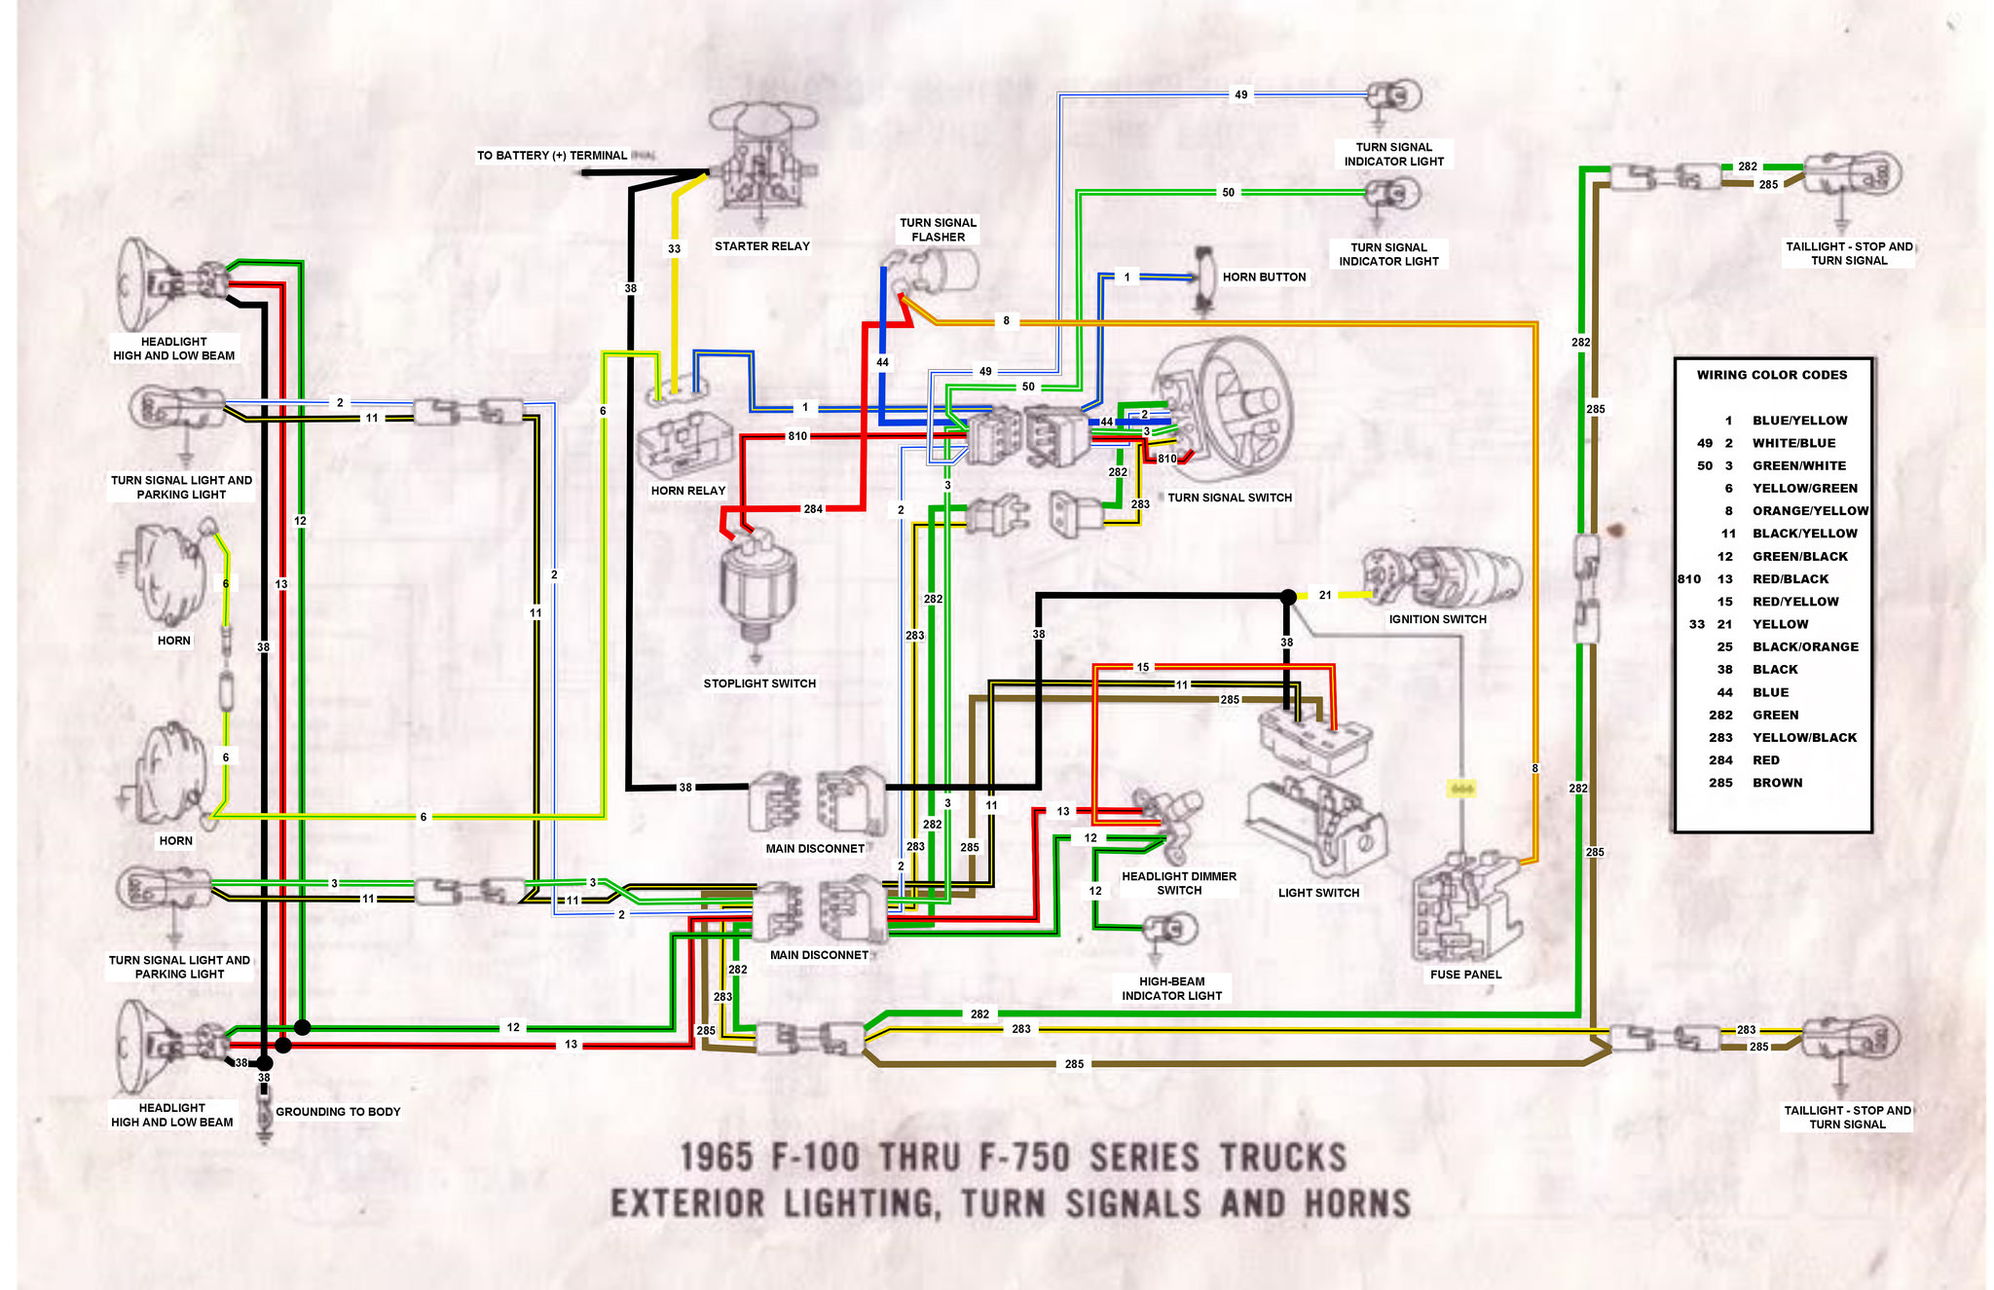 65 f100 thru f750 exterior wiring diagram ford truck 2007 ford econoline fuse  box location 2007 ford econoline e250 fuse diagram